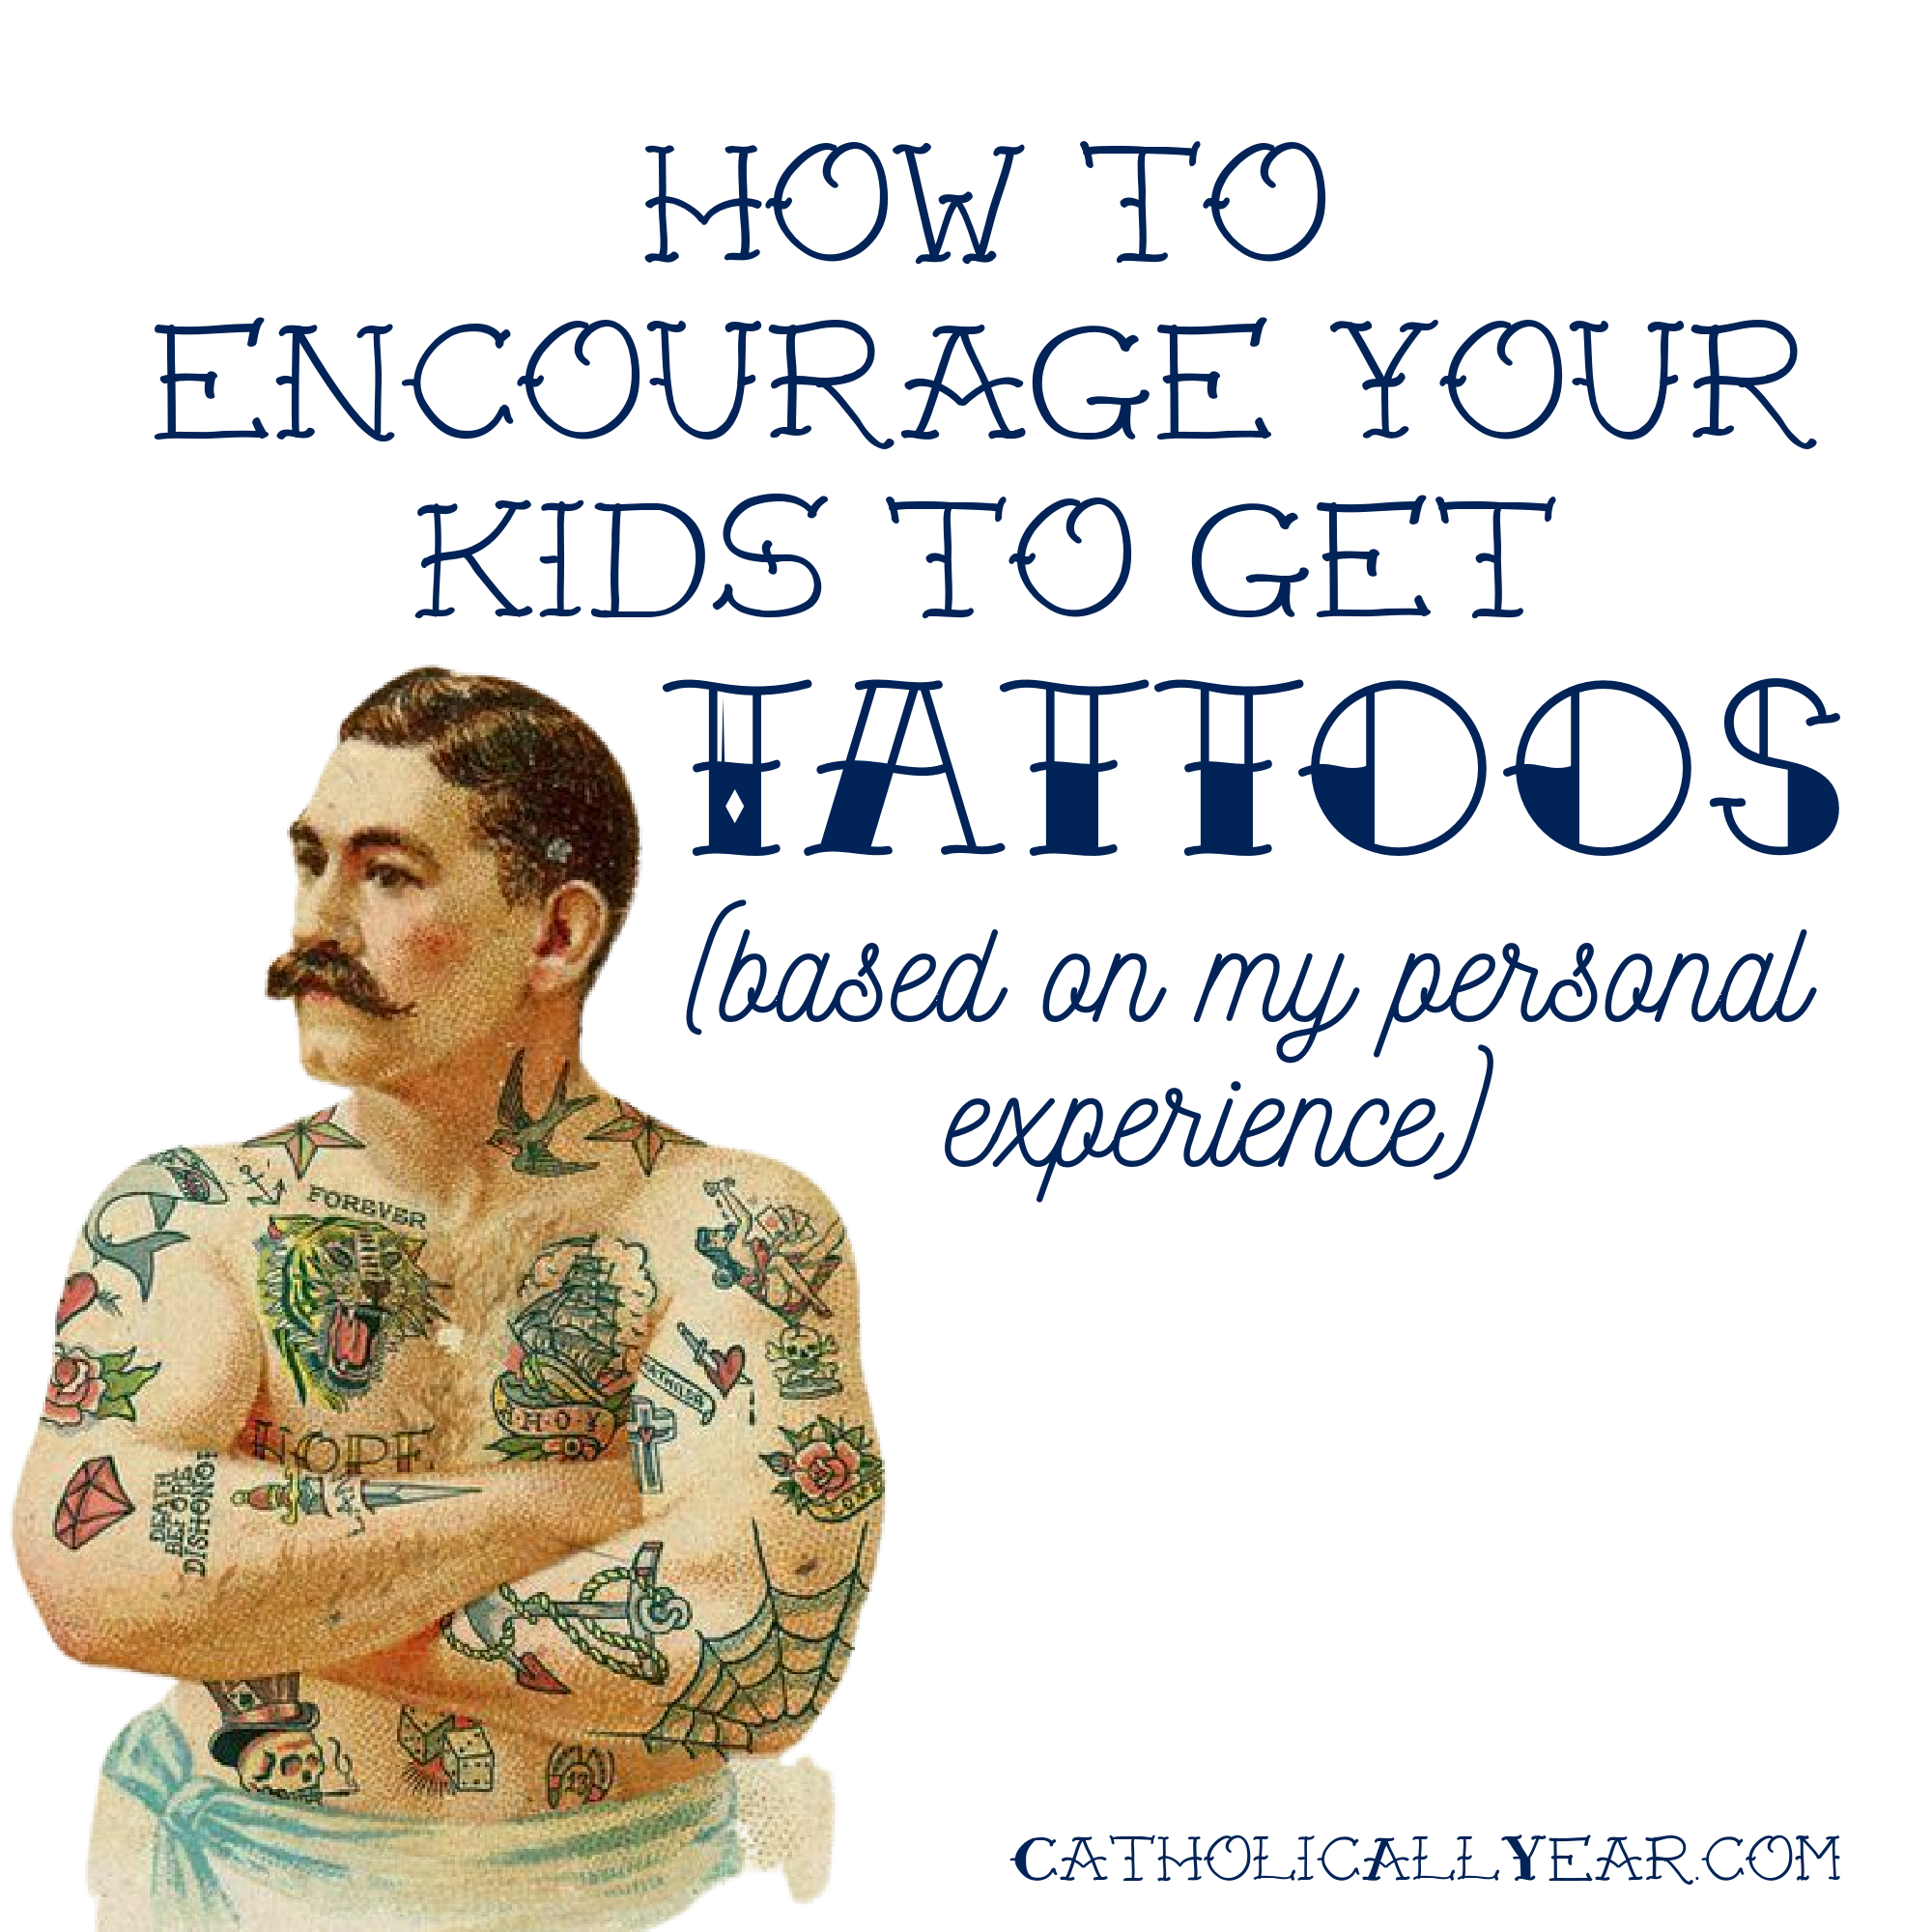 How to Encourage Your Kids to Get Tattoos (based on my personal experience)